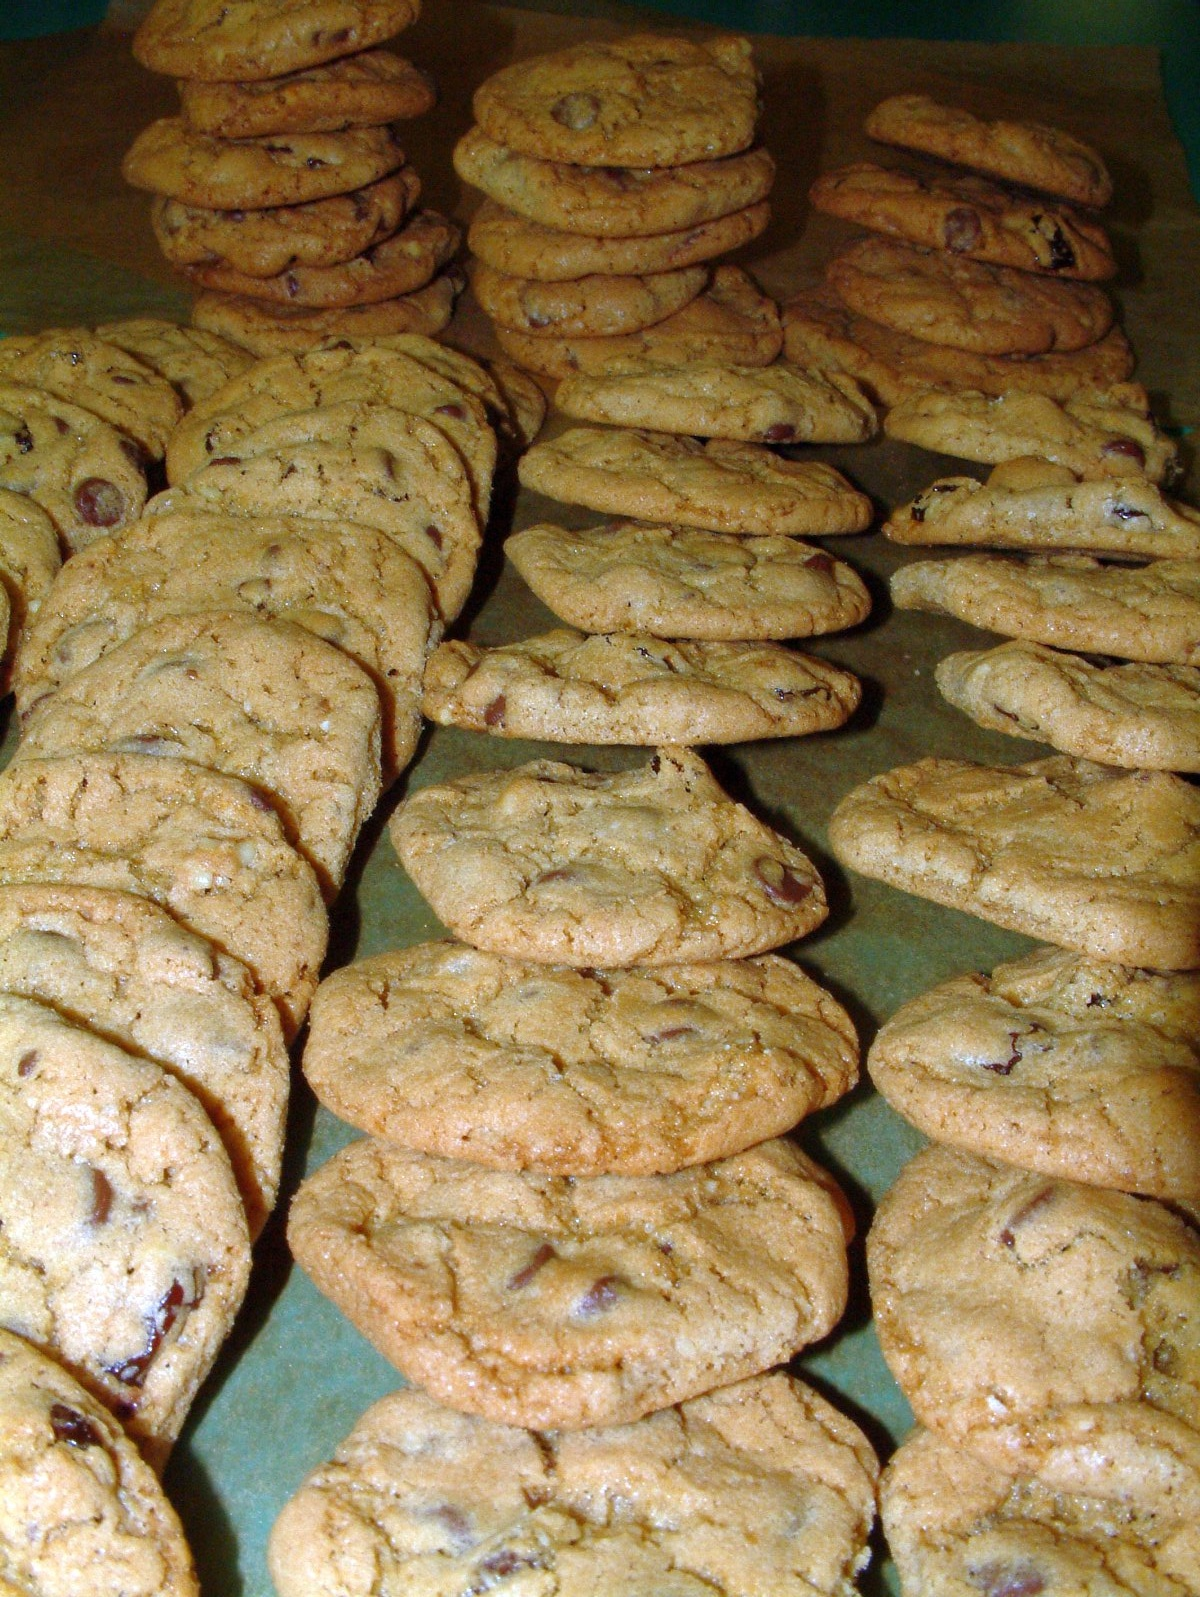 More Cookies Line Up!